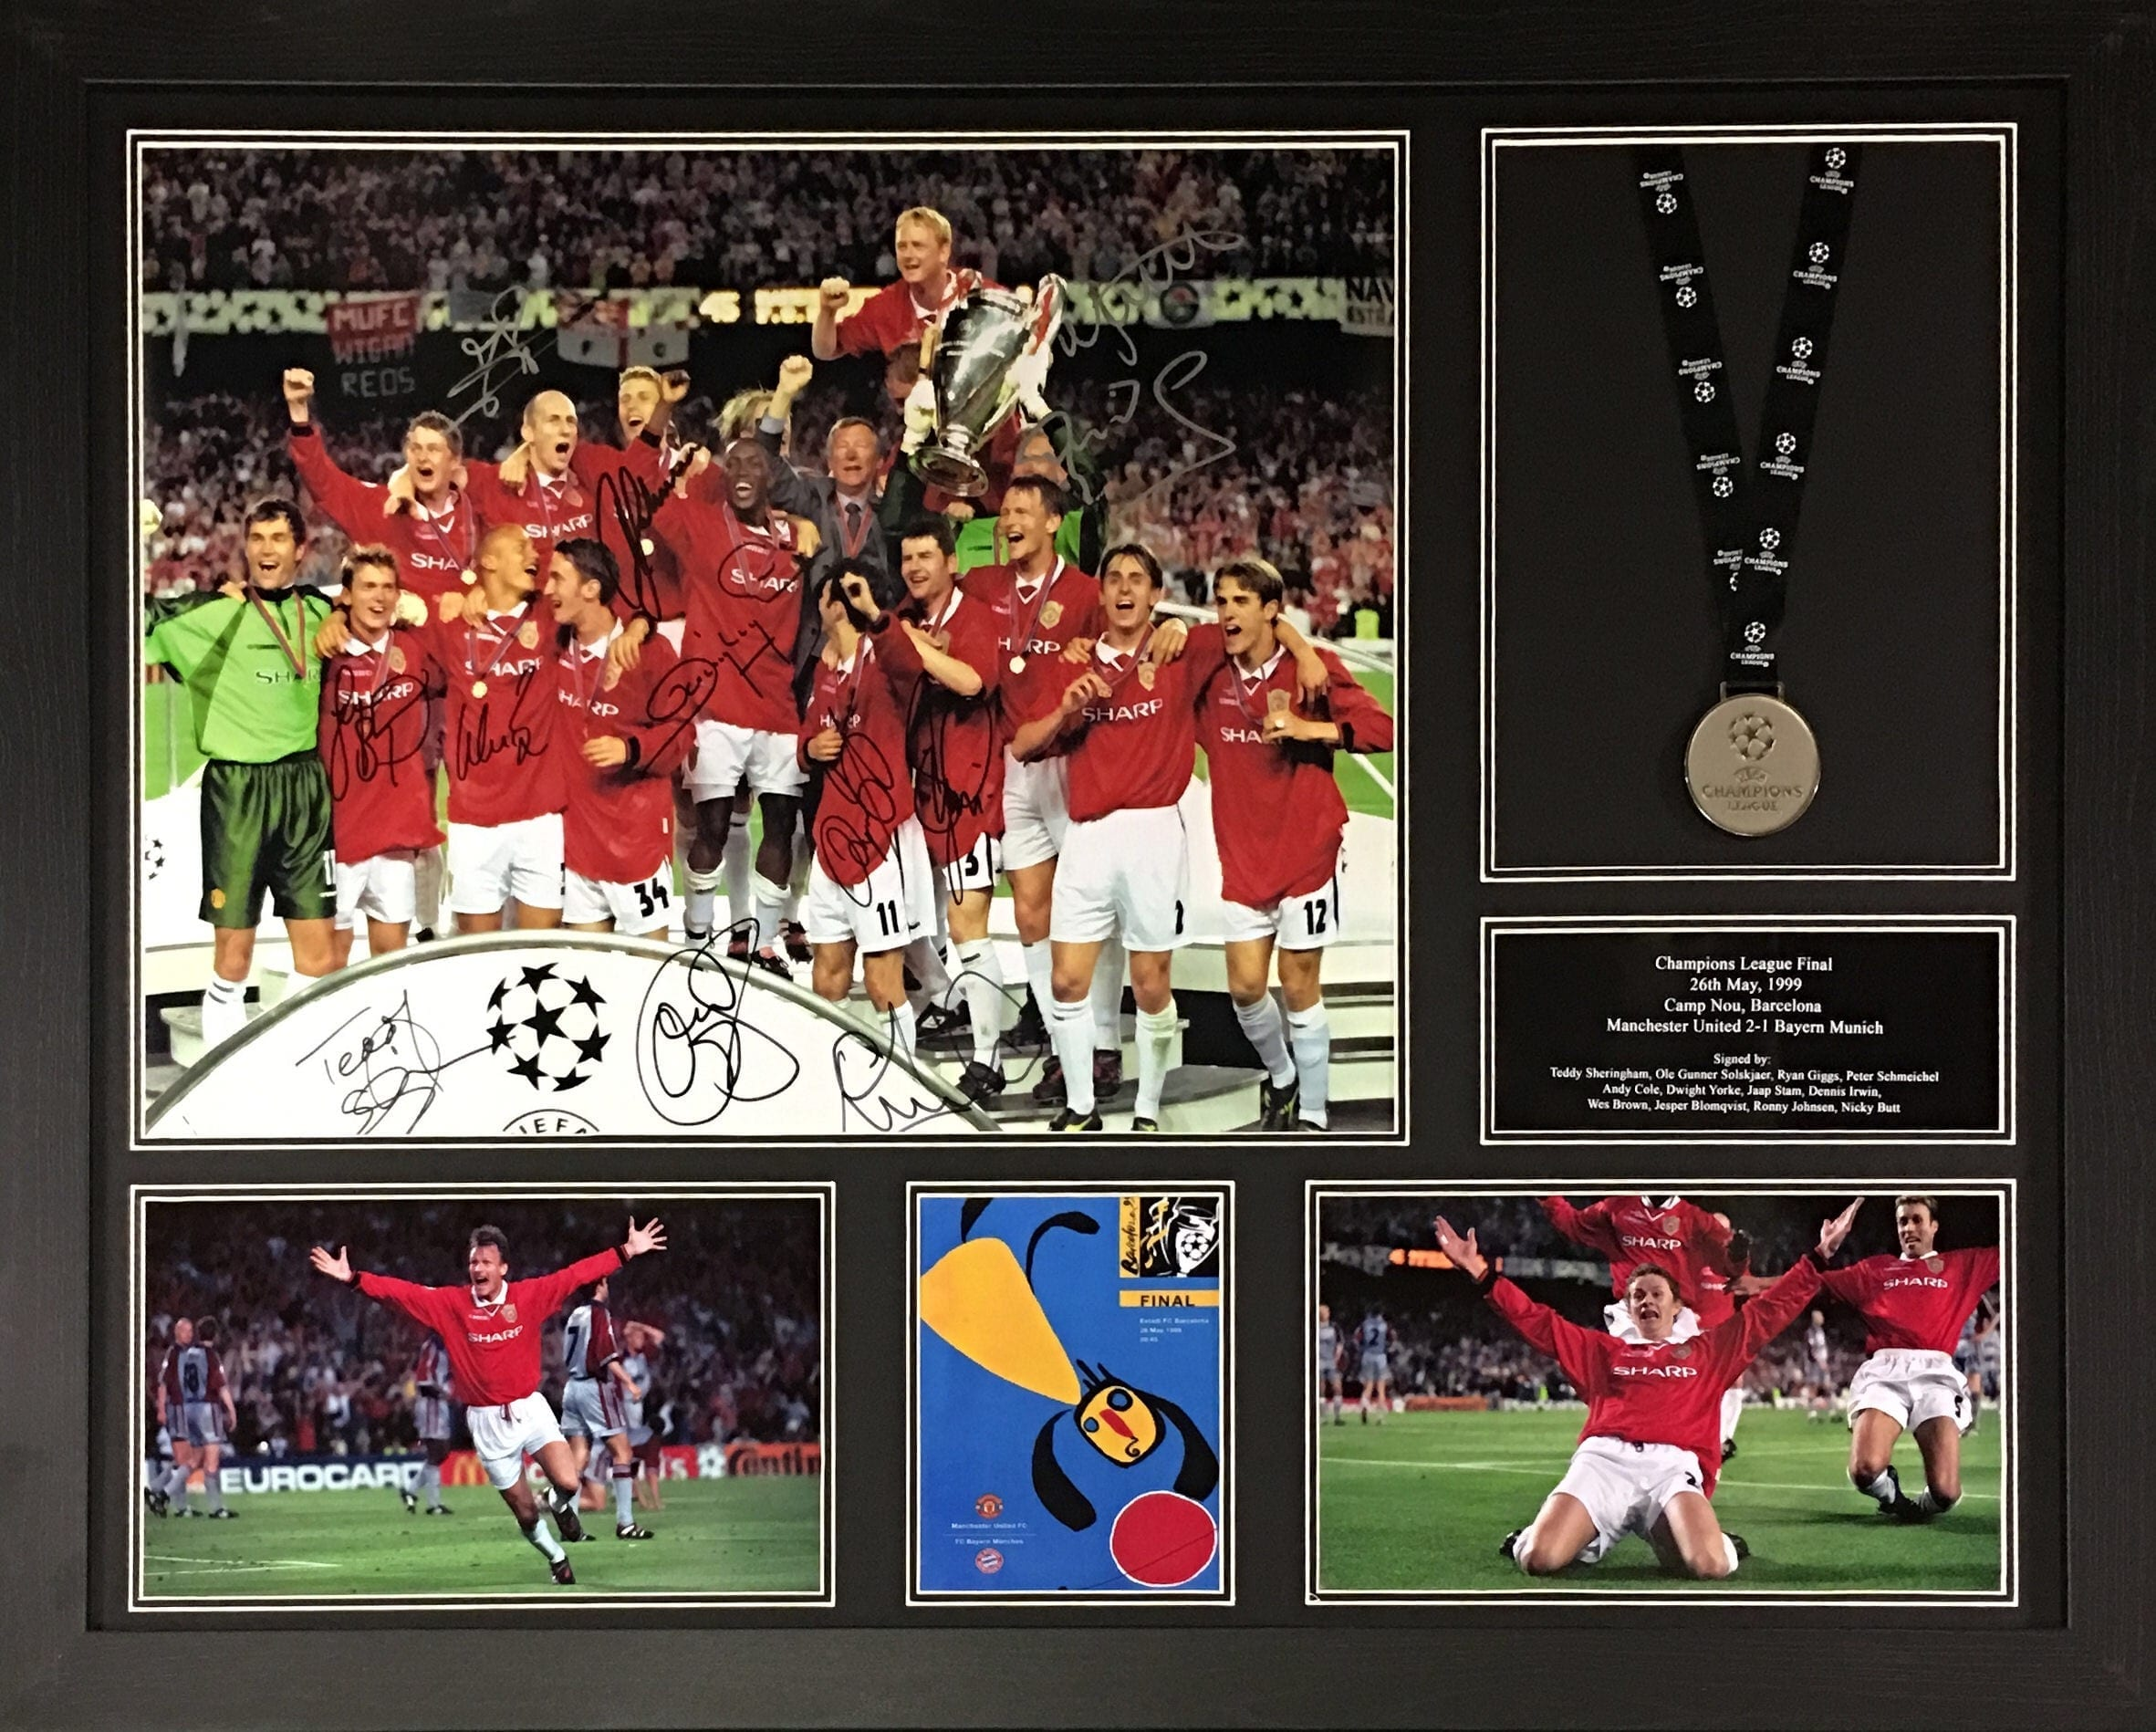 Multi signed champions league final photo with medal 984b61787